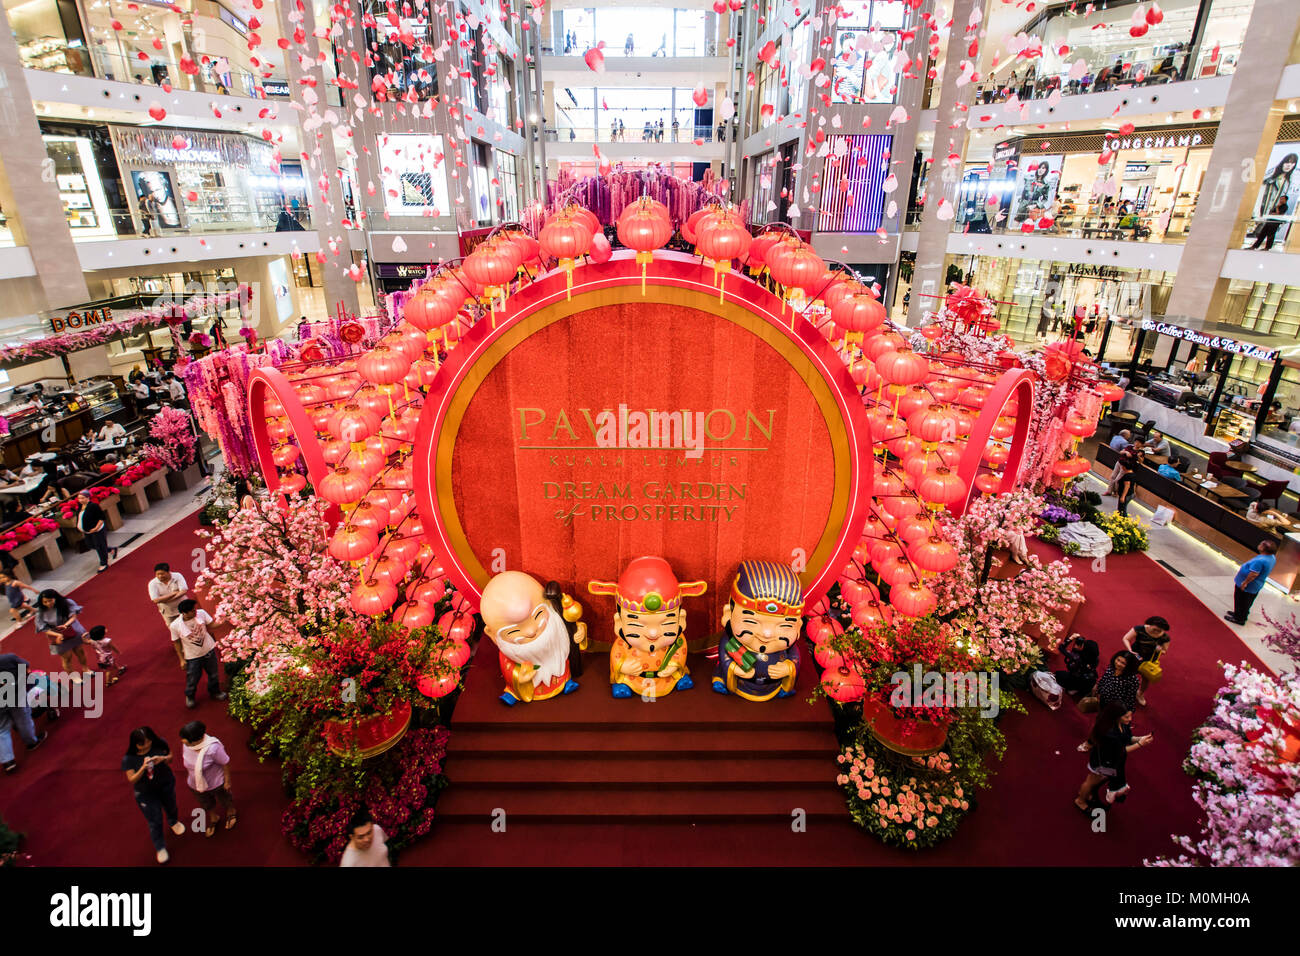 kuala lumpur shopping malls are getting ready to welcome the year of the dog chinese new year 2018 in the coming weeks big chinese new year theme